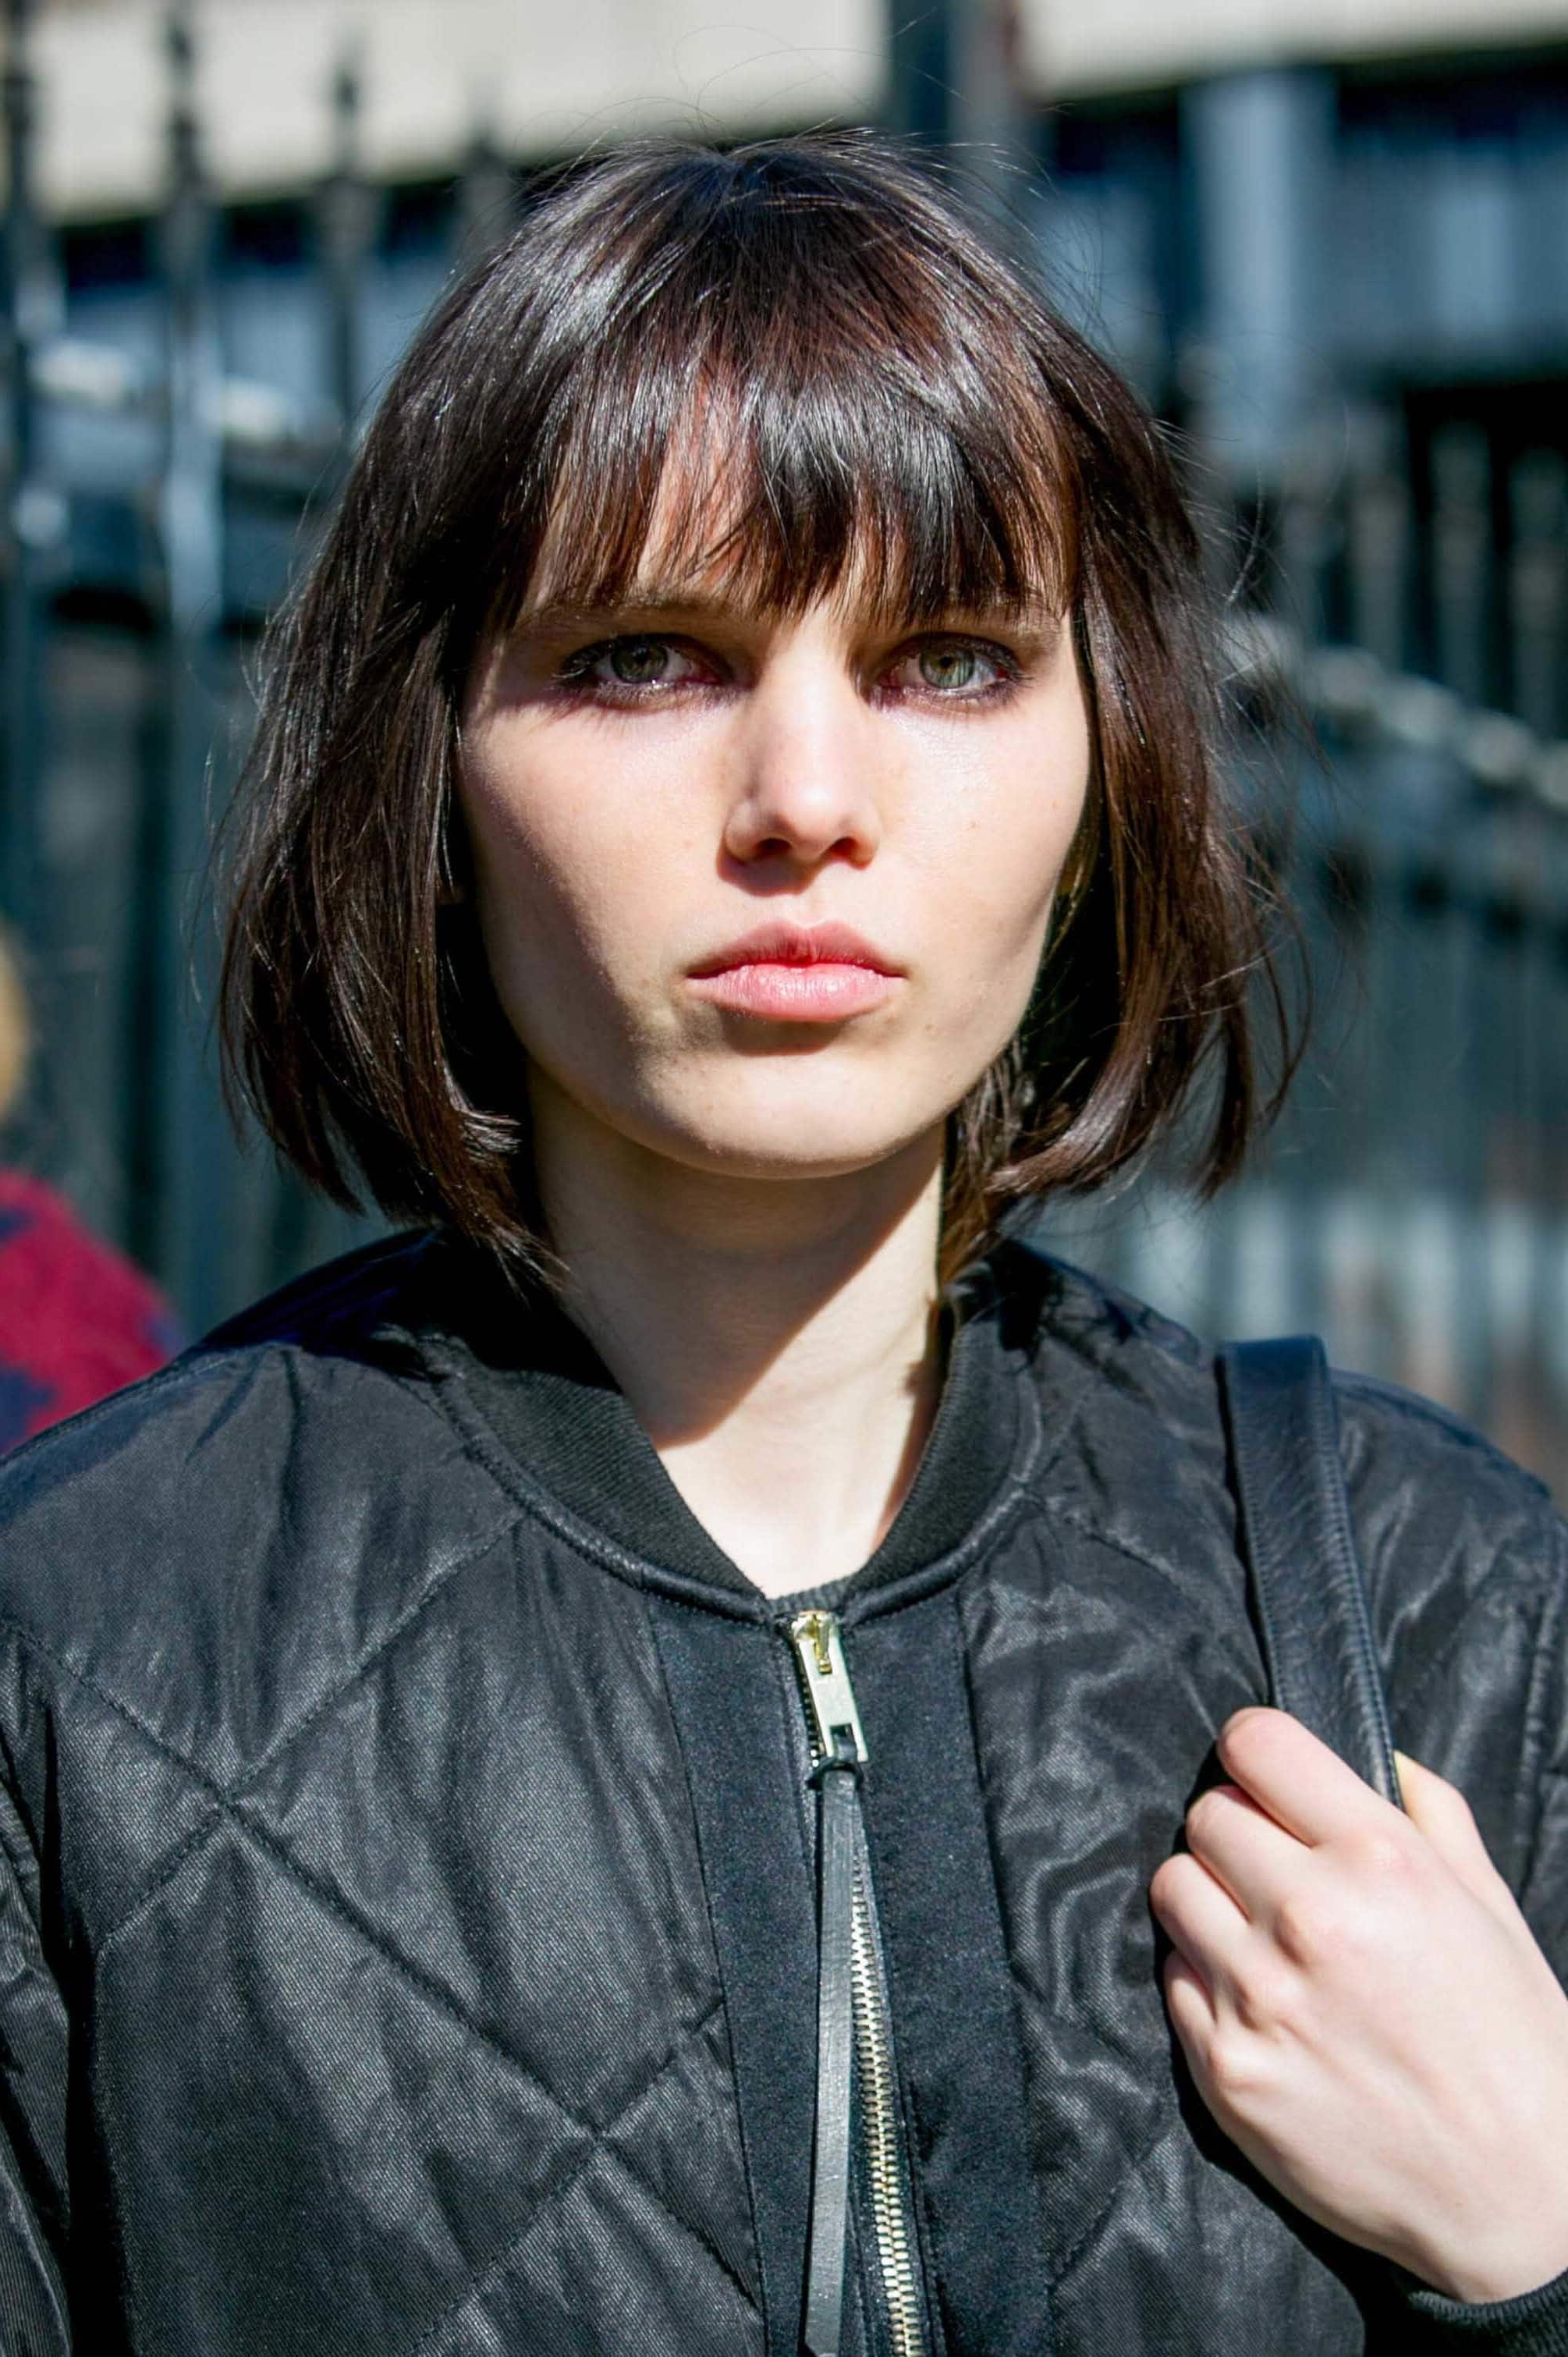 Short Hair With A Fringe: Your Complete Guide To Pulling It Off Inside Short Haircuts With Longer Bangs (View 24 of 25)